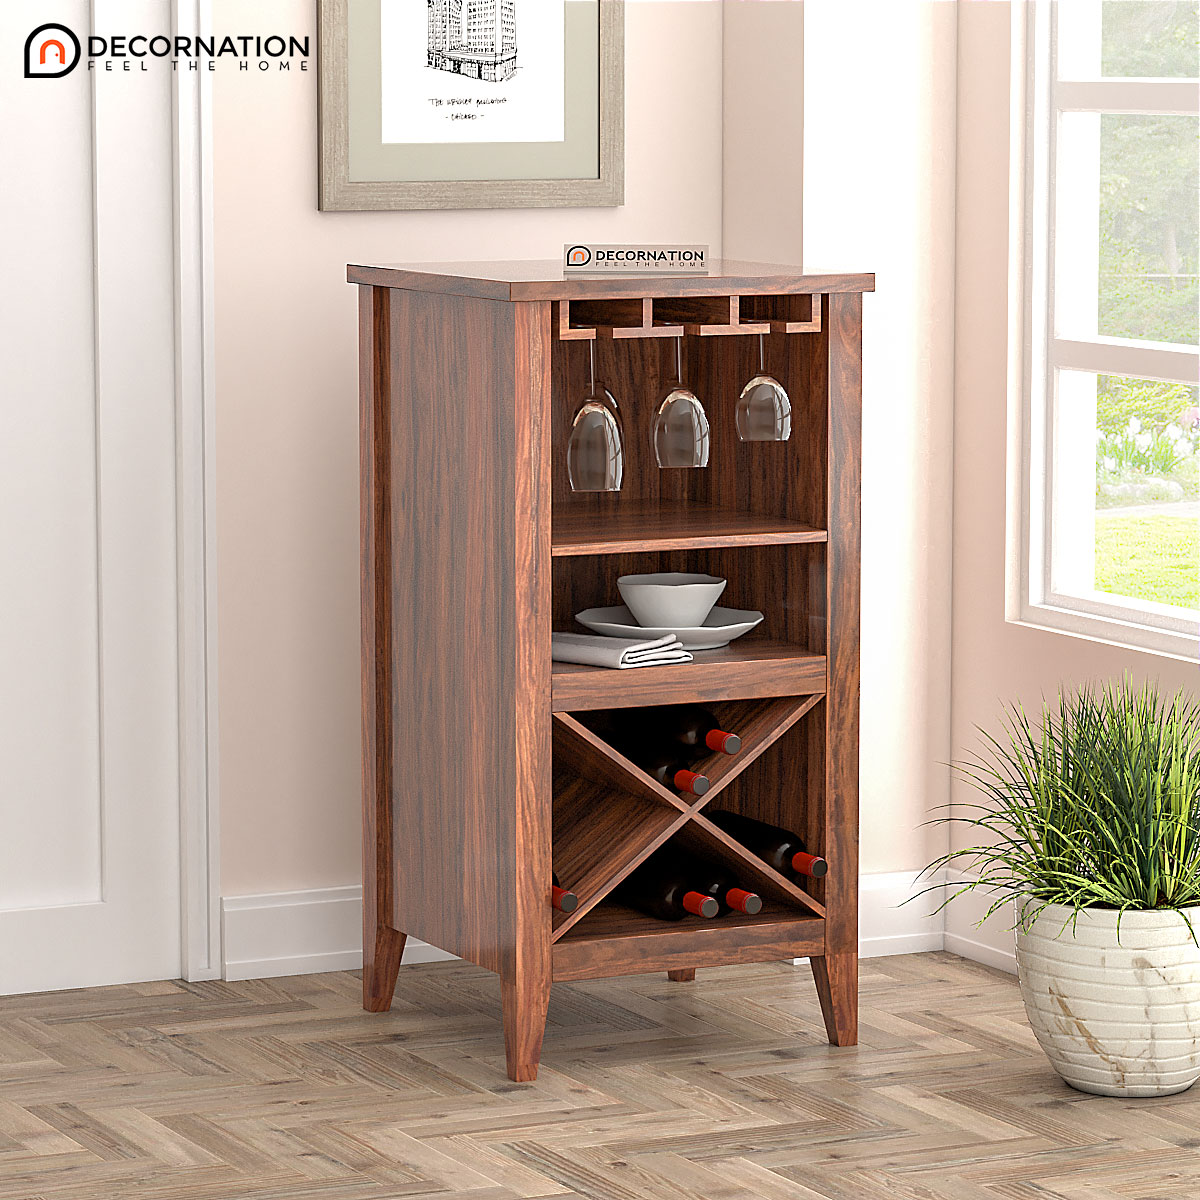 wooden-bar-unit